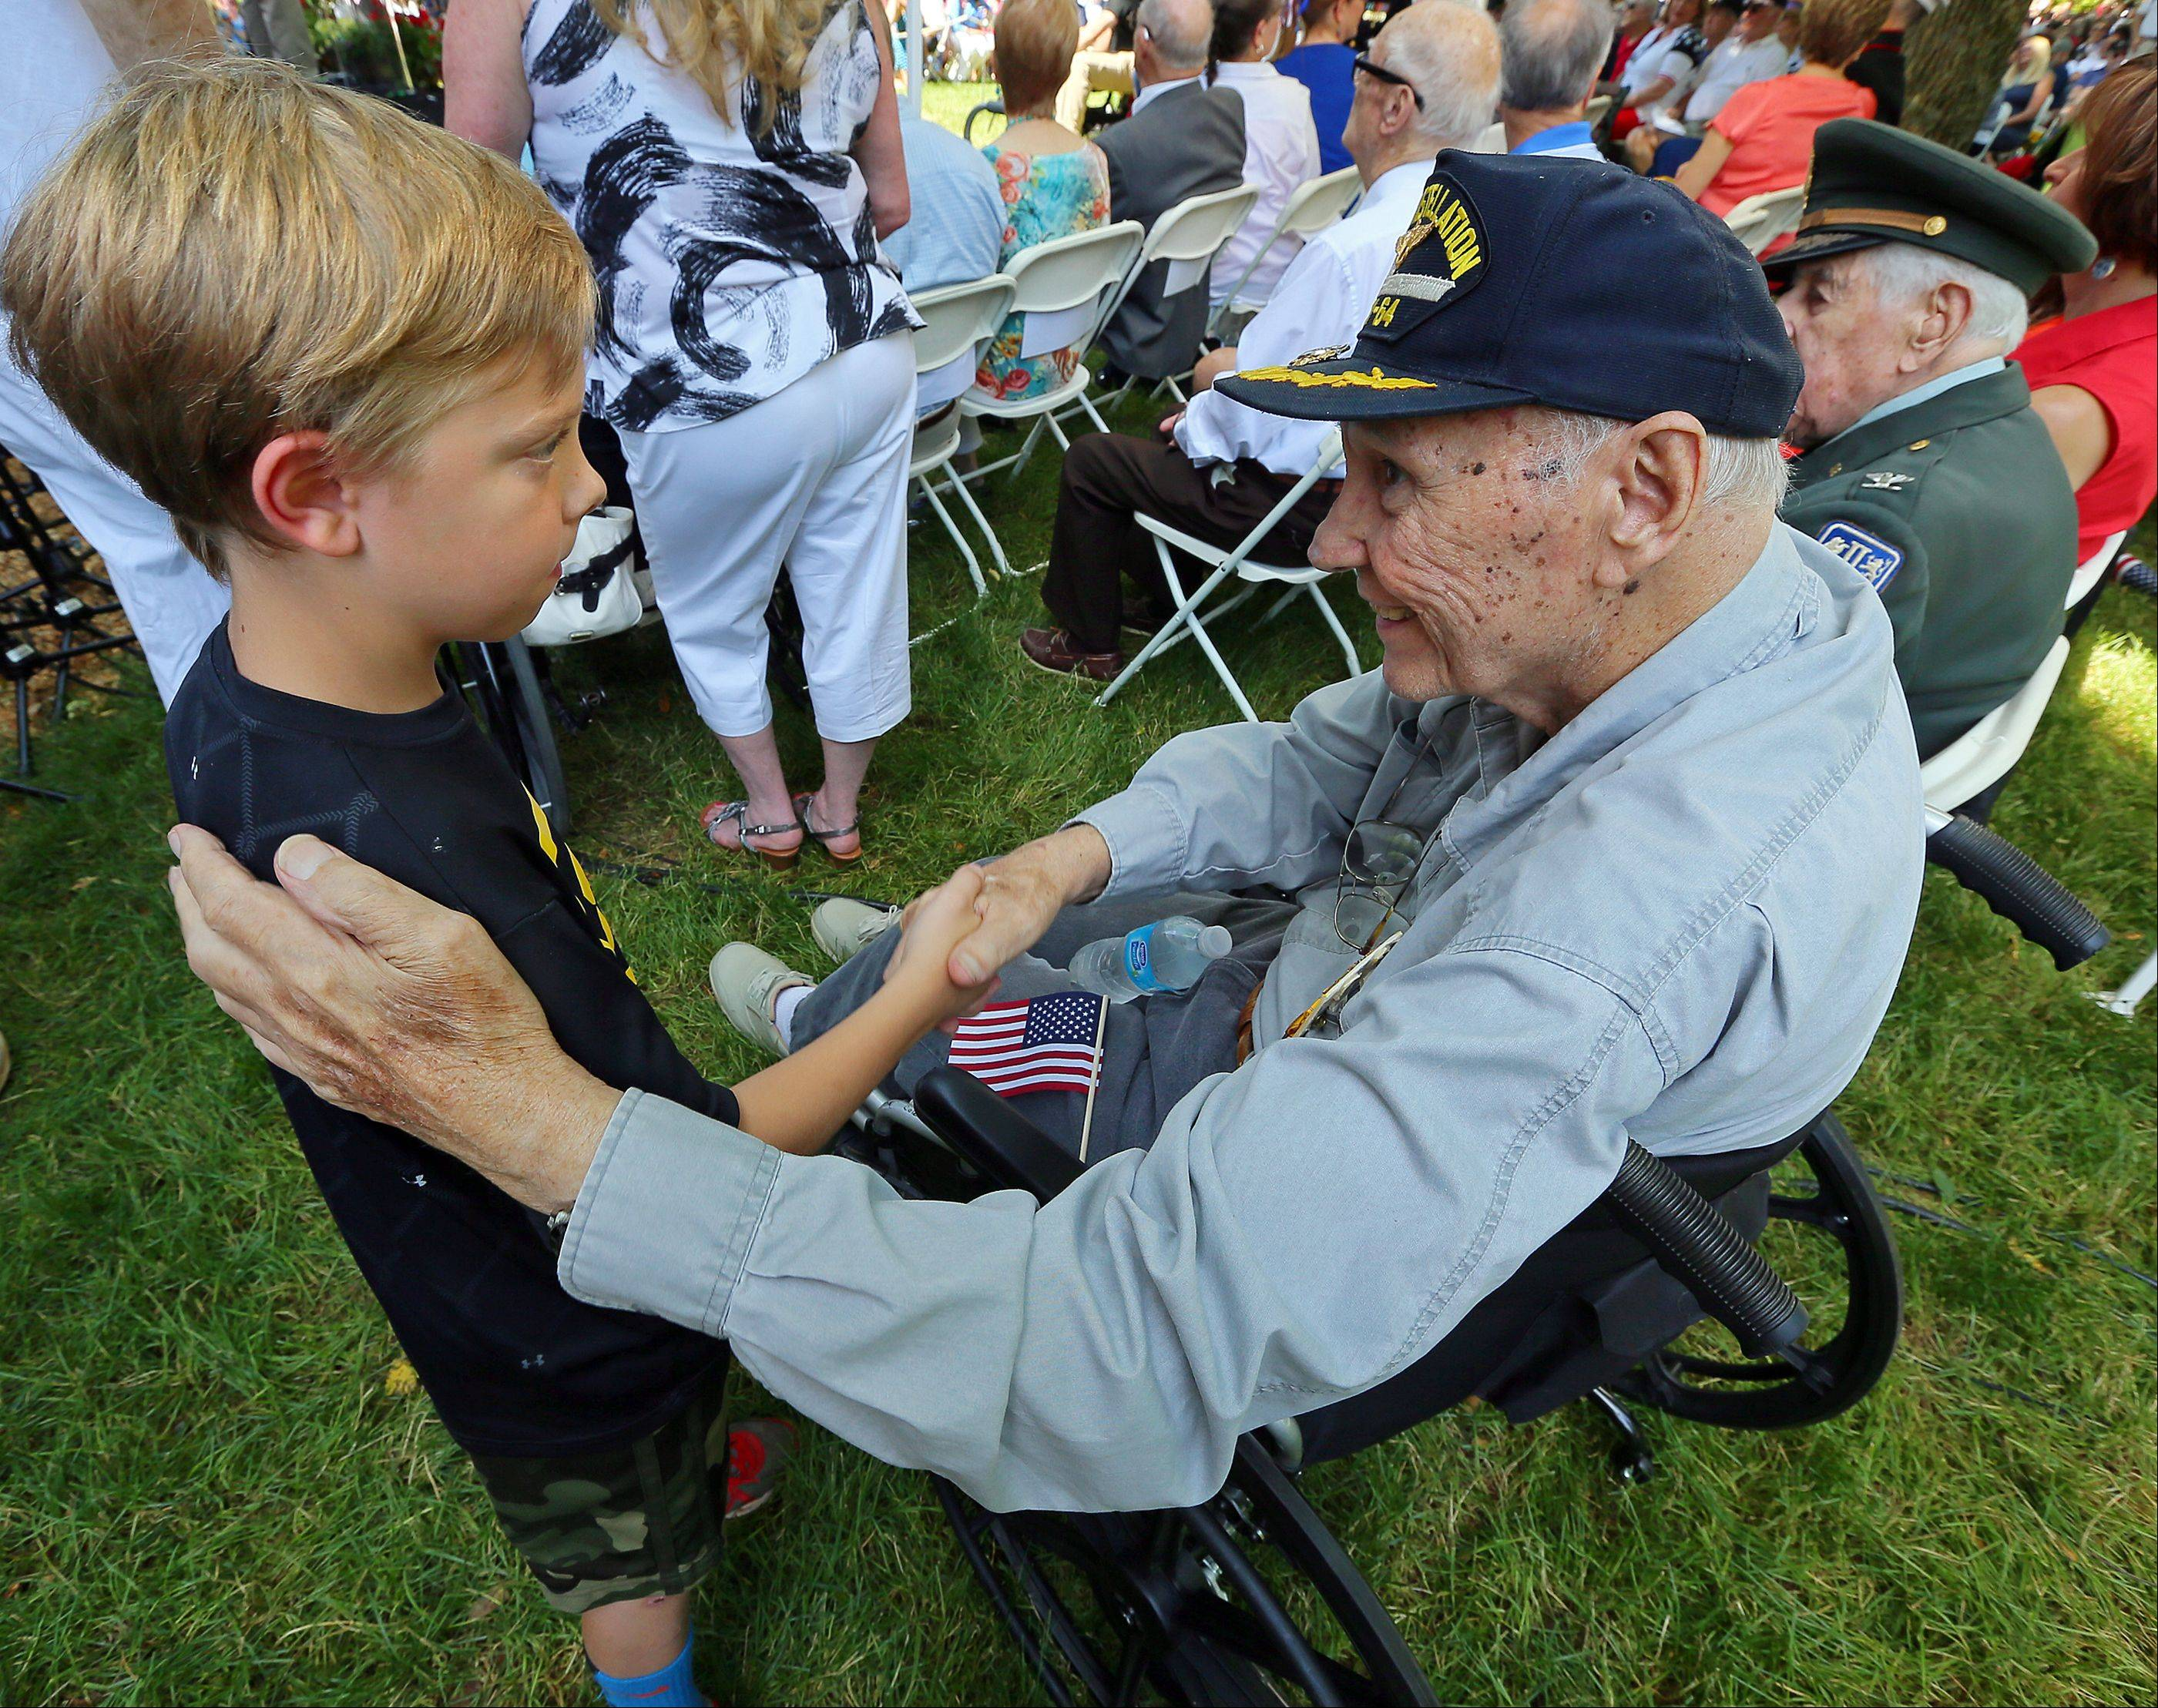 Eight-year-old Jackson Turman shakes the hand of World War II Navy Veteran and Vietnam Veteran Frank Coleman, 85, of Roswell, after giving him a salute during the �Roswell Remembers� Memorial Day military ceremony at city hall on Monday, May 27, 2013, in Roswell, Ga. Coleman returned the salute and gave the young man a hug. Turman was attending the Memorial Day service with his grandfather Russ Johnson of Roswell, who is a Marine Vietnam veteran.